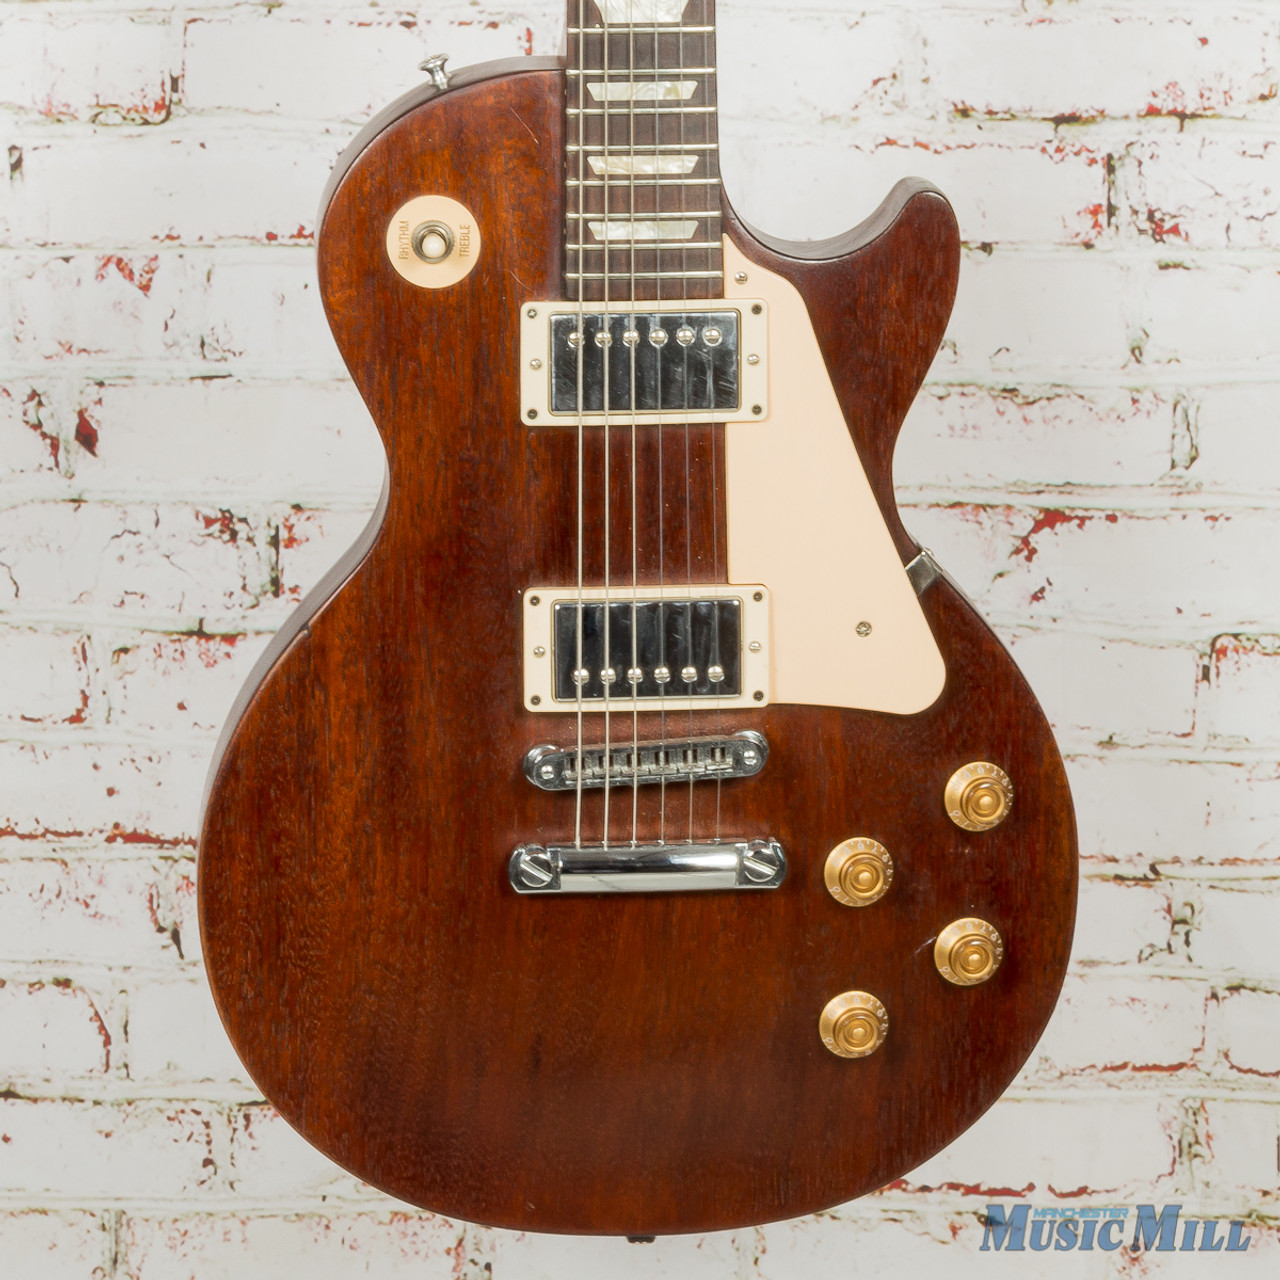 Les Paul Studio >> 2007 Gibson Les Paul Studio Faded Brown Used Manchester Music Mill